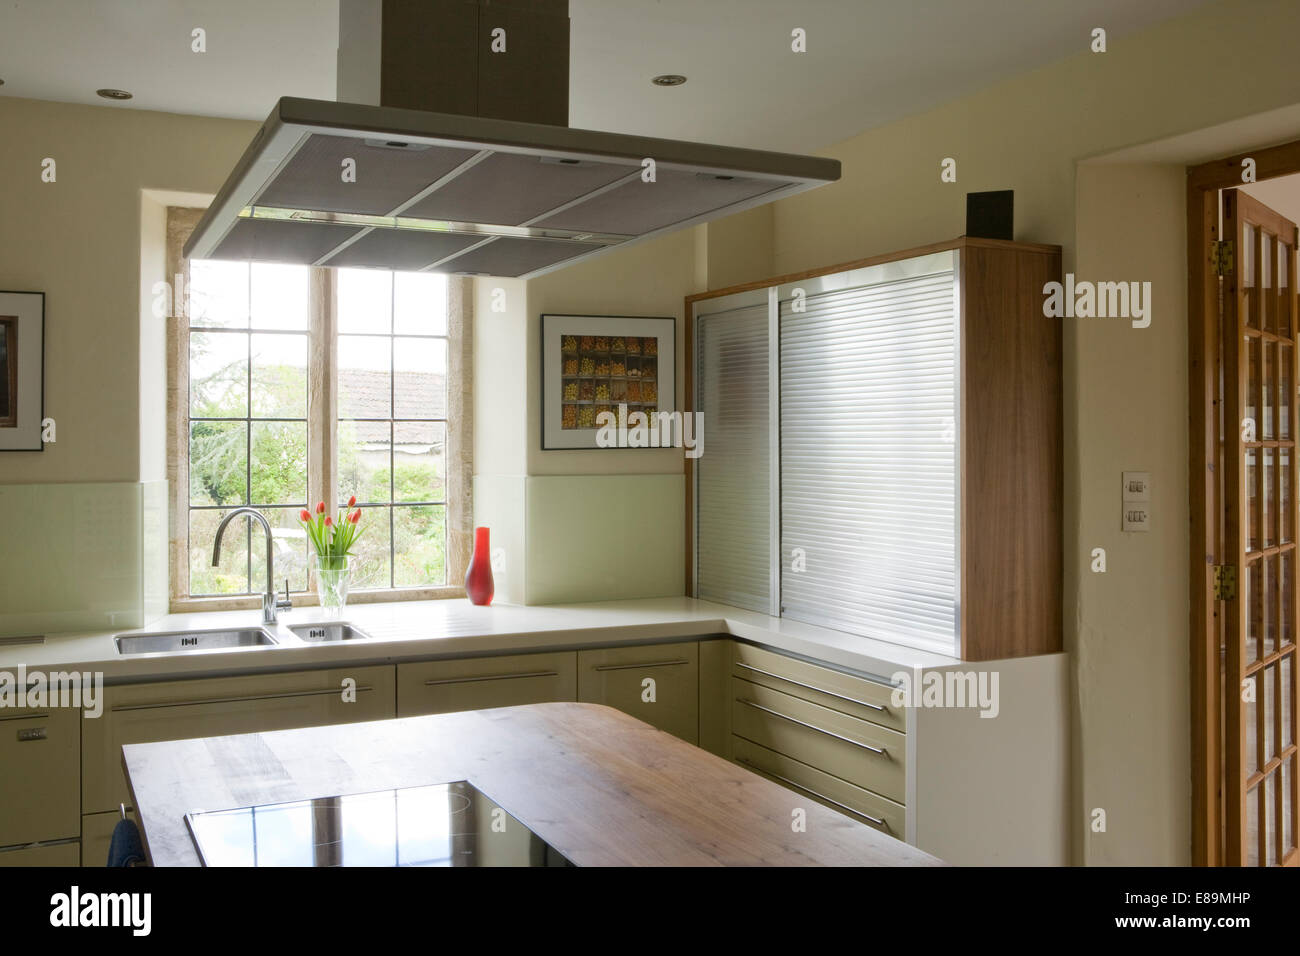 Extractor fan above central island unit in modern kitchen Stock ...